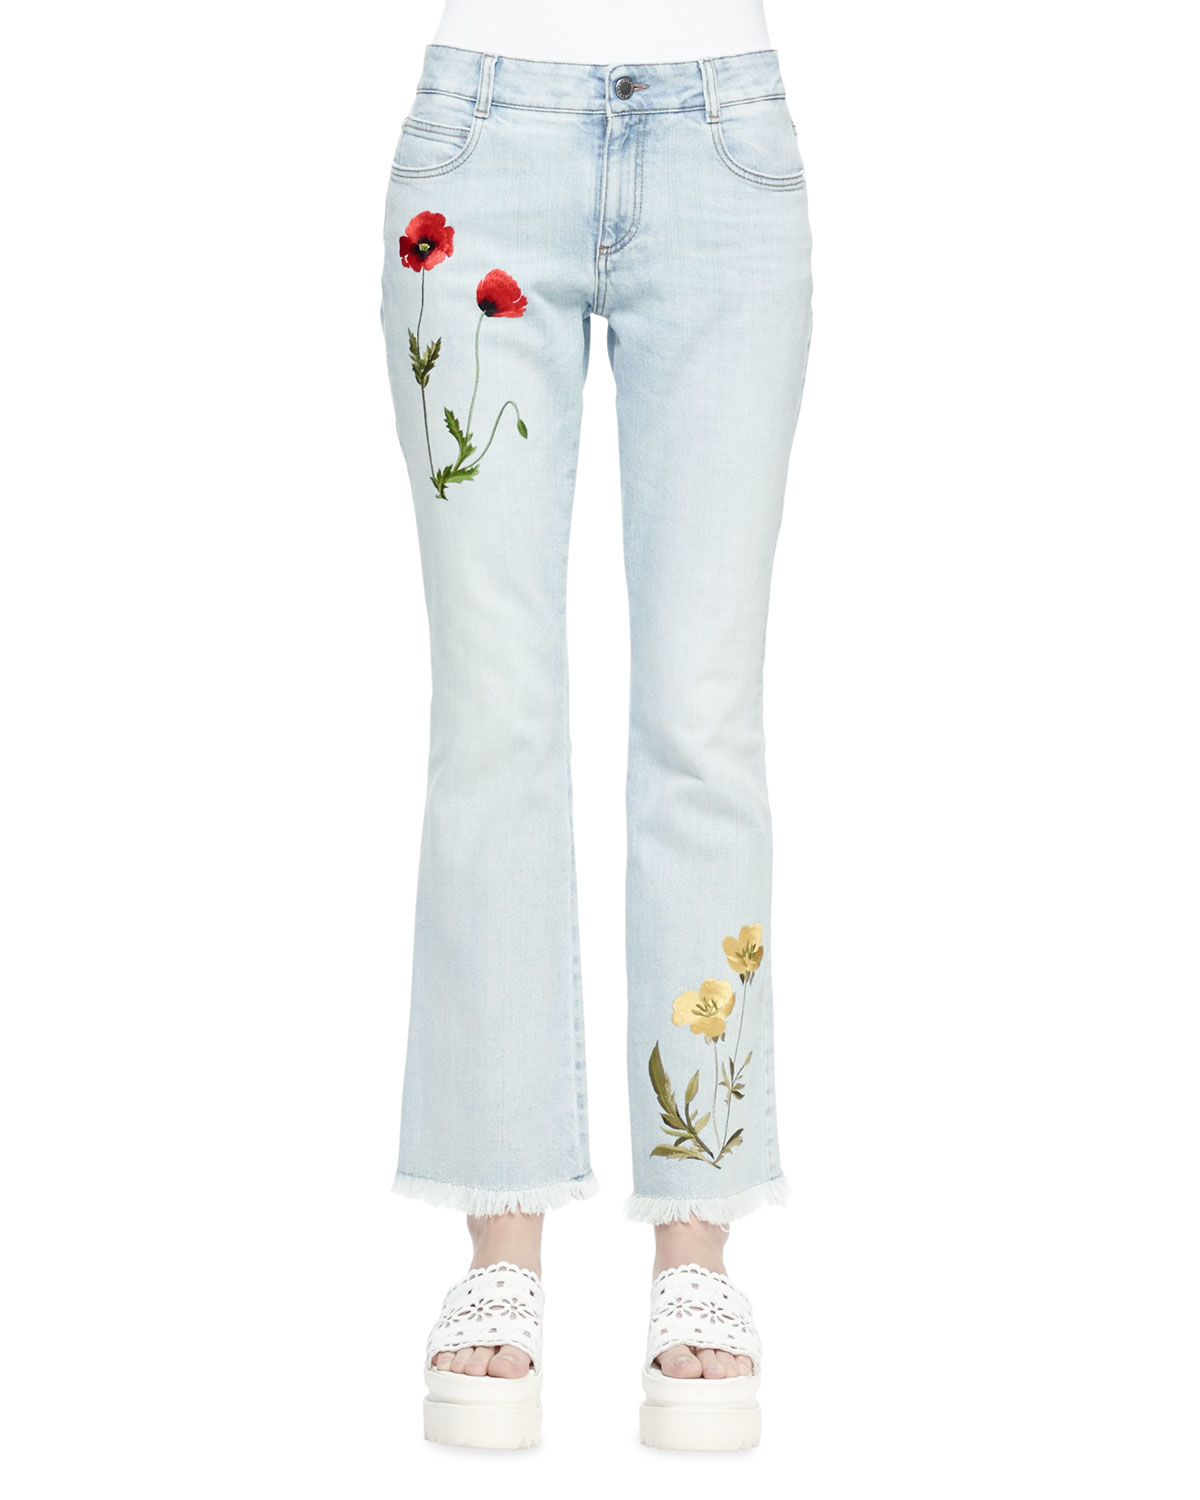 Stella mccartney floral embroidered flare jeans in blue